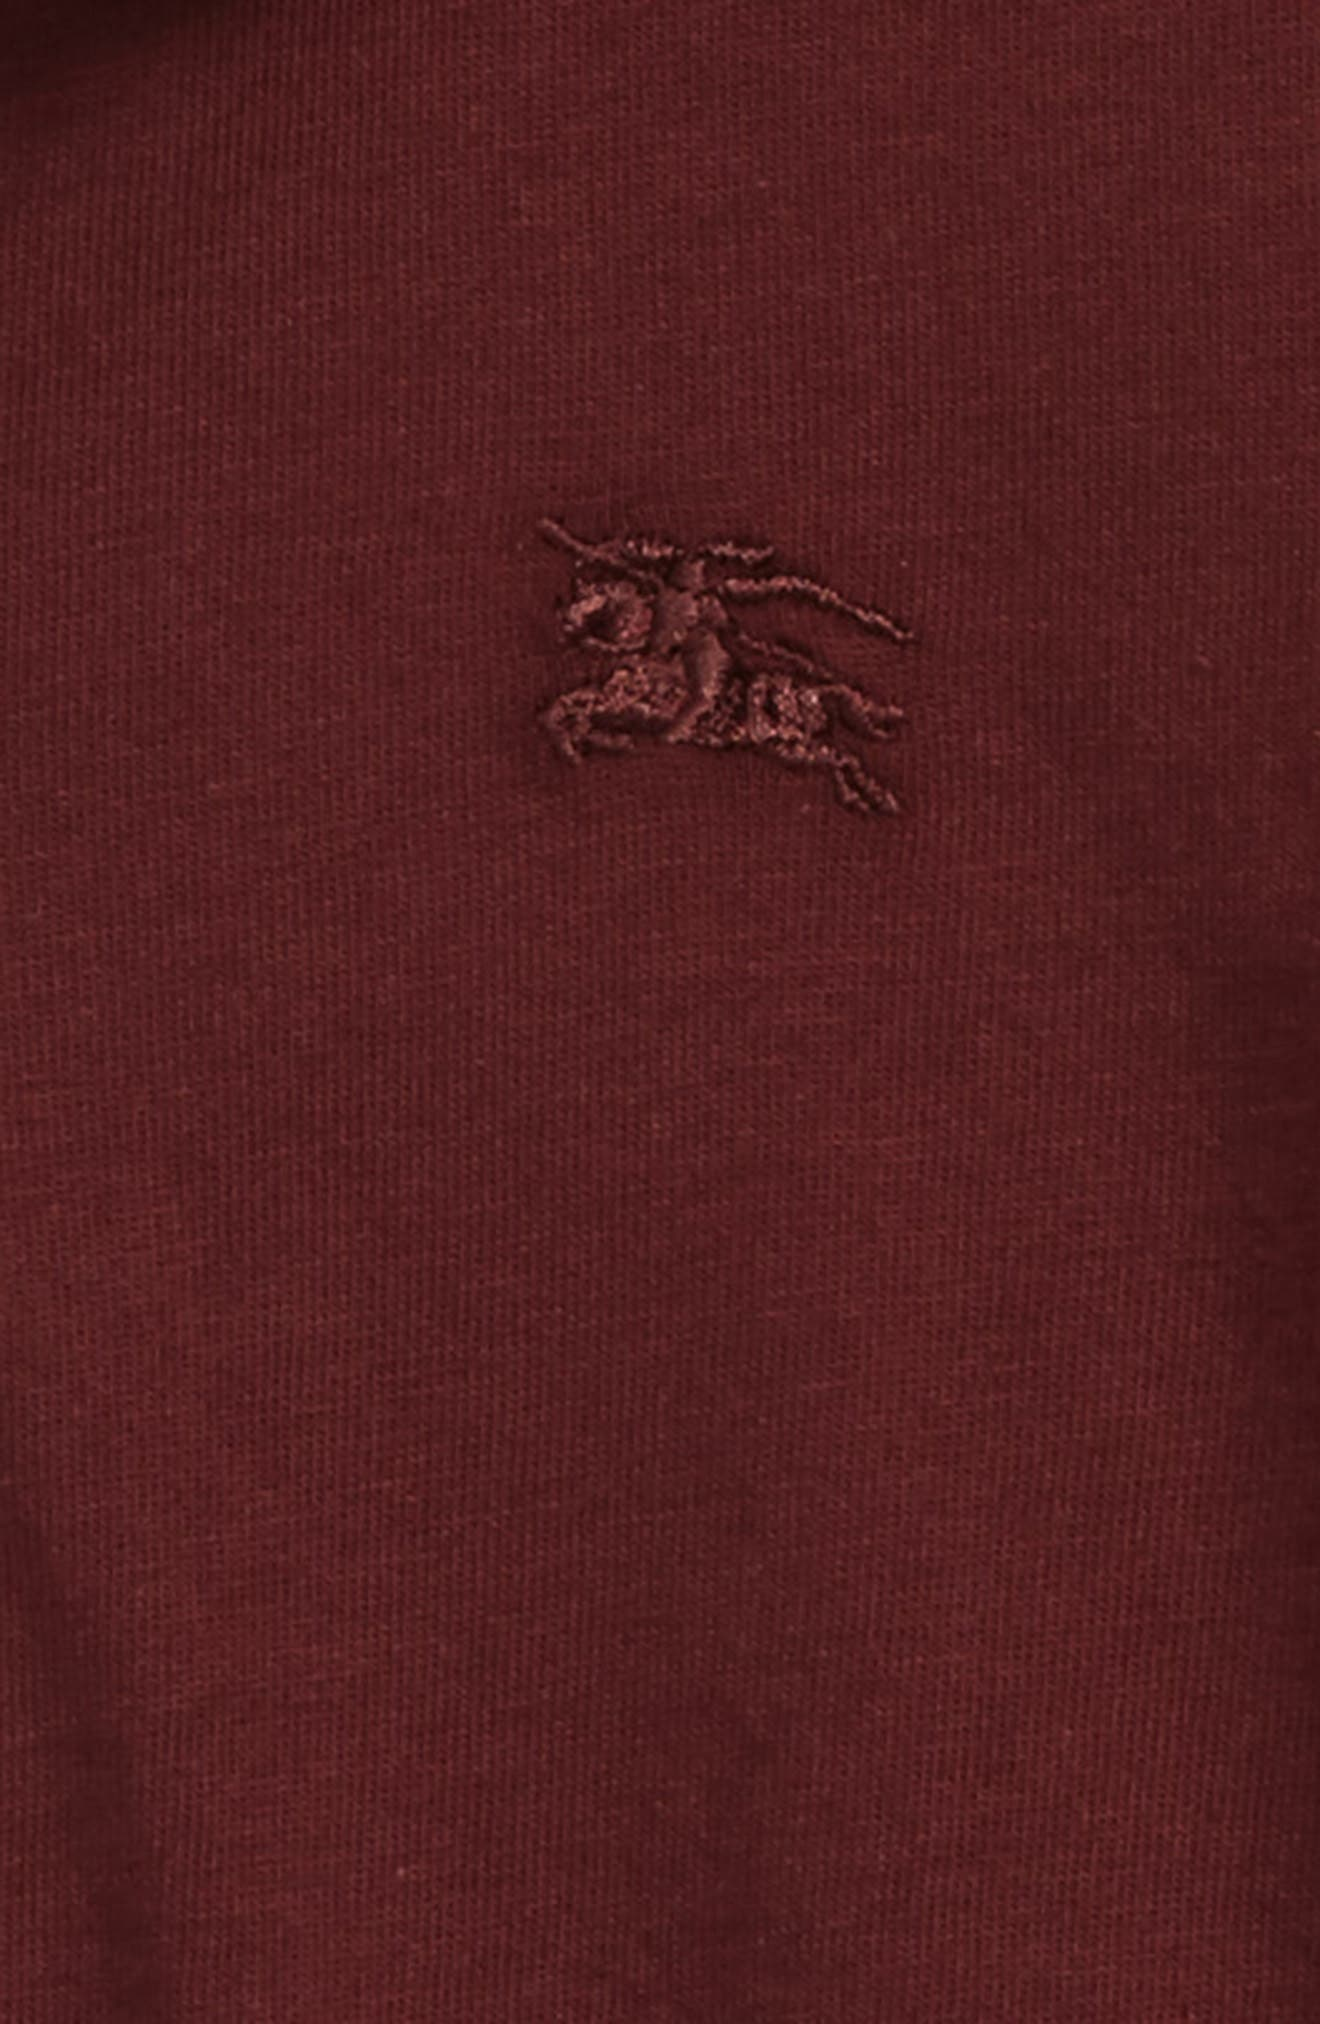 Alternate Image 2  - Burberry 'Mini' Long Sleeve Polo Shirt (Little Boys & Big Boys)